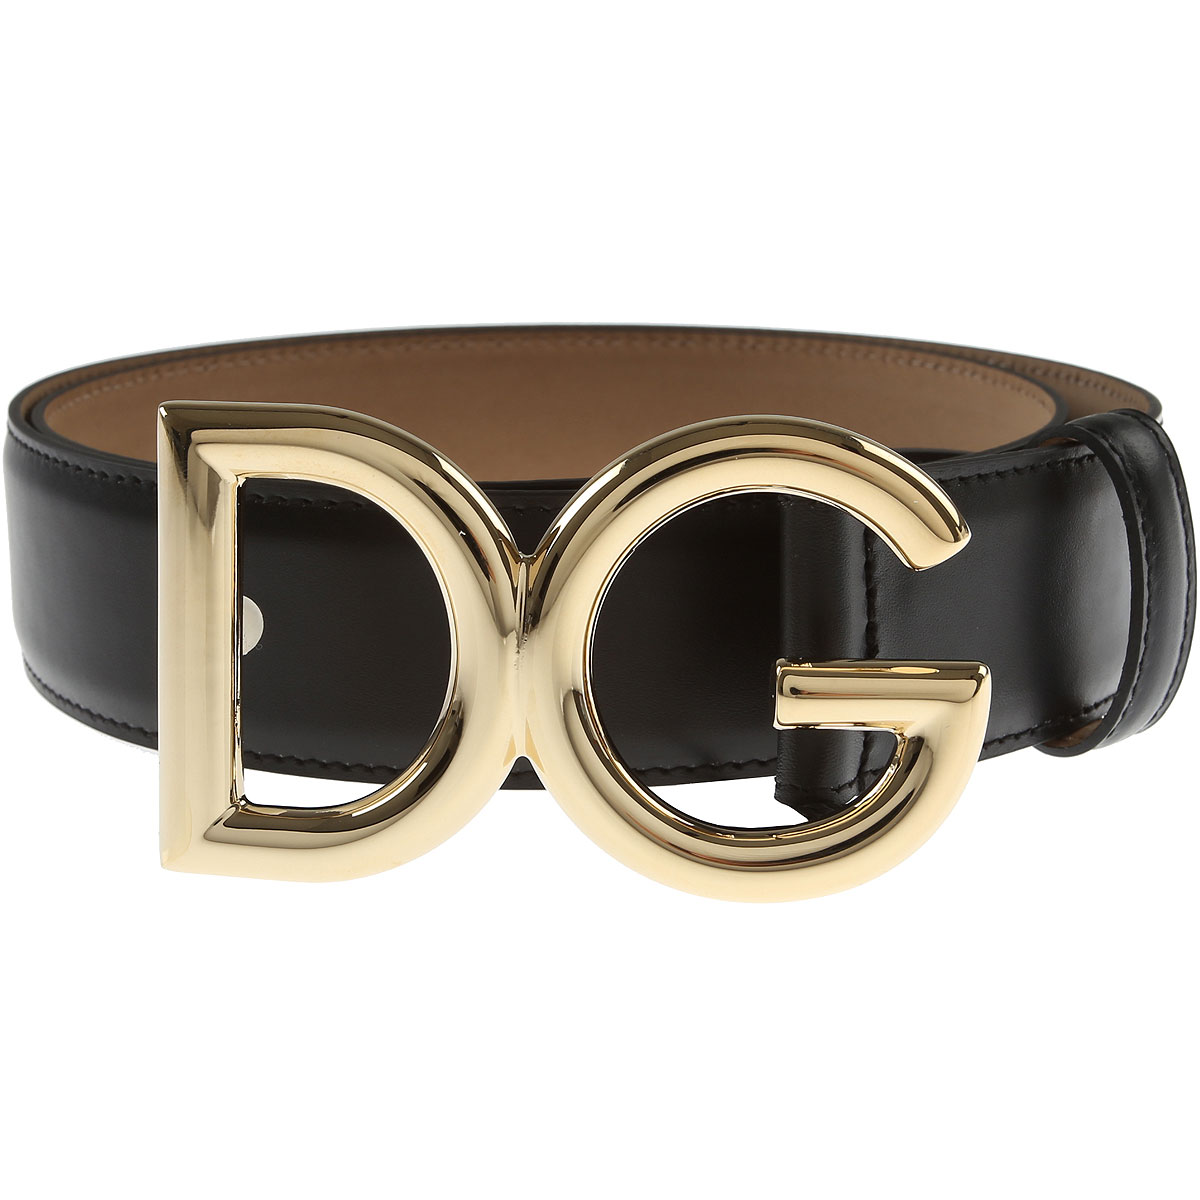 Dolce & Gabbana Womens Belts, Black, Leather, 2017, 30 inches - 75 cm 32 inches - 80 cm 34 inches - 85 cm 36 inches - 90 cm 38 inches - 95 cm